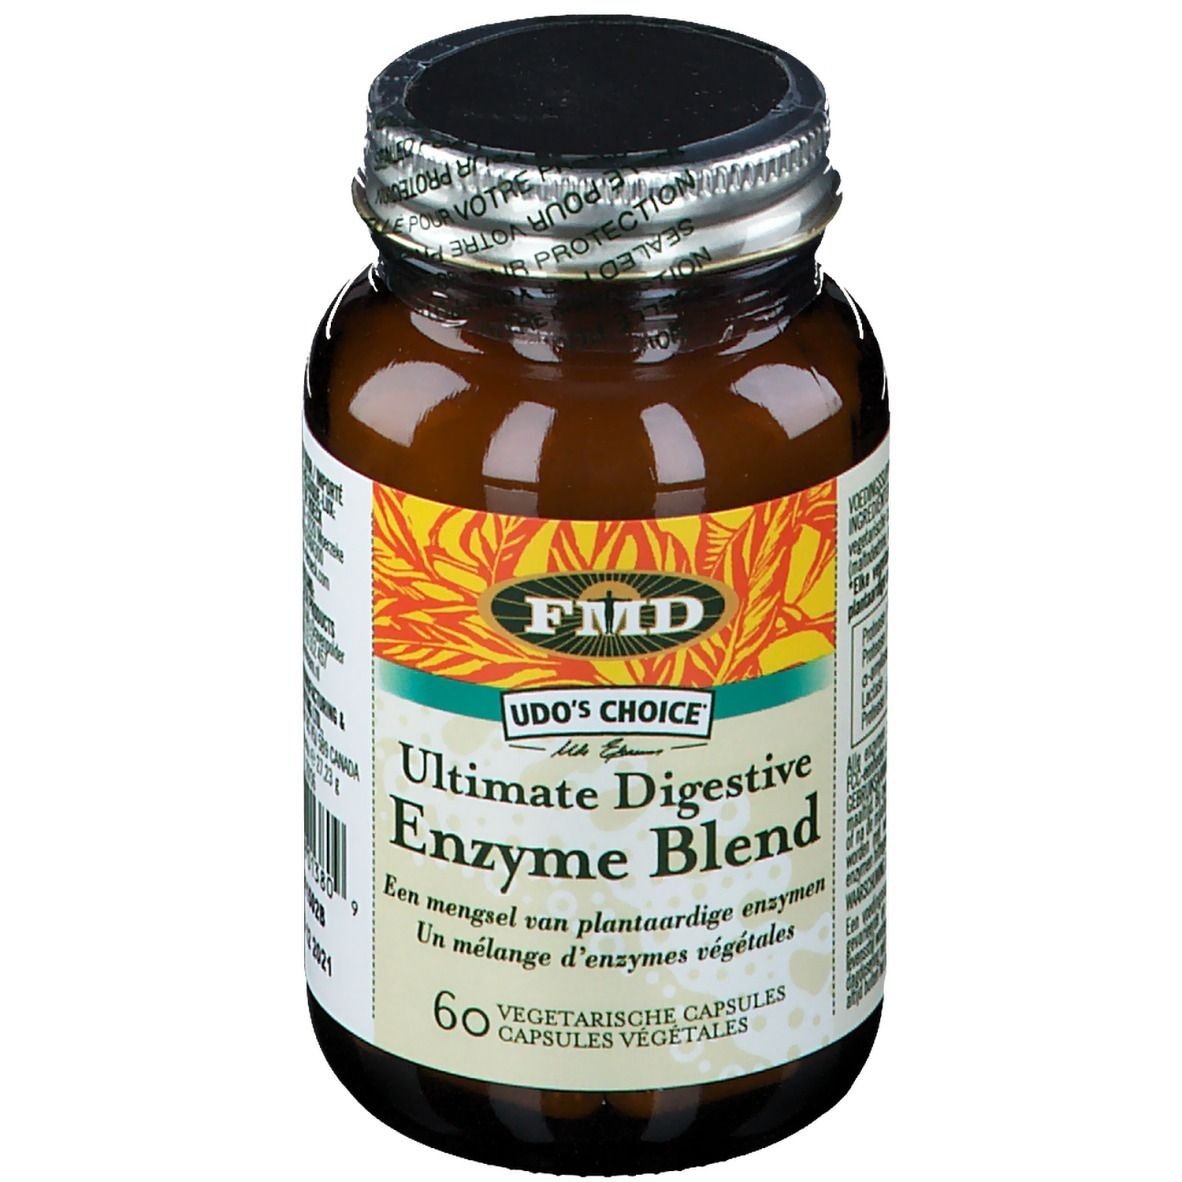 Image of Udo's Choice® Ultimative Digestive Enzyme Blend